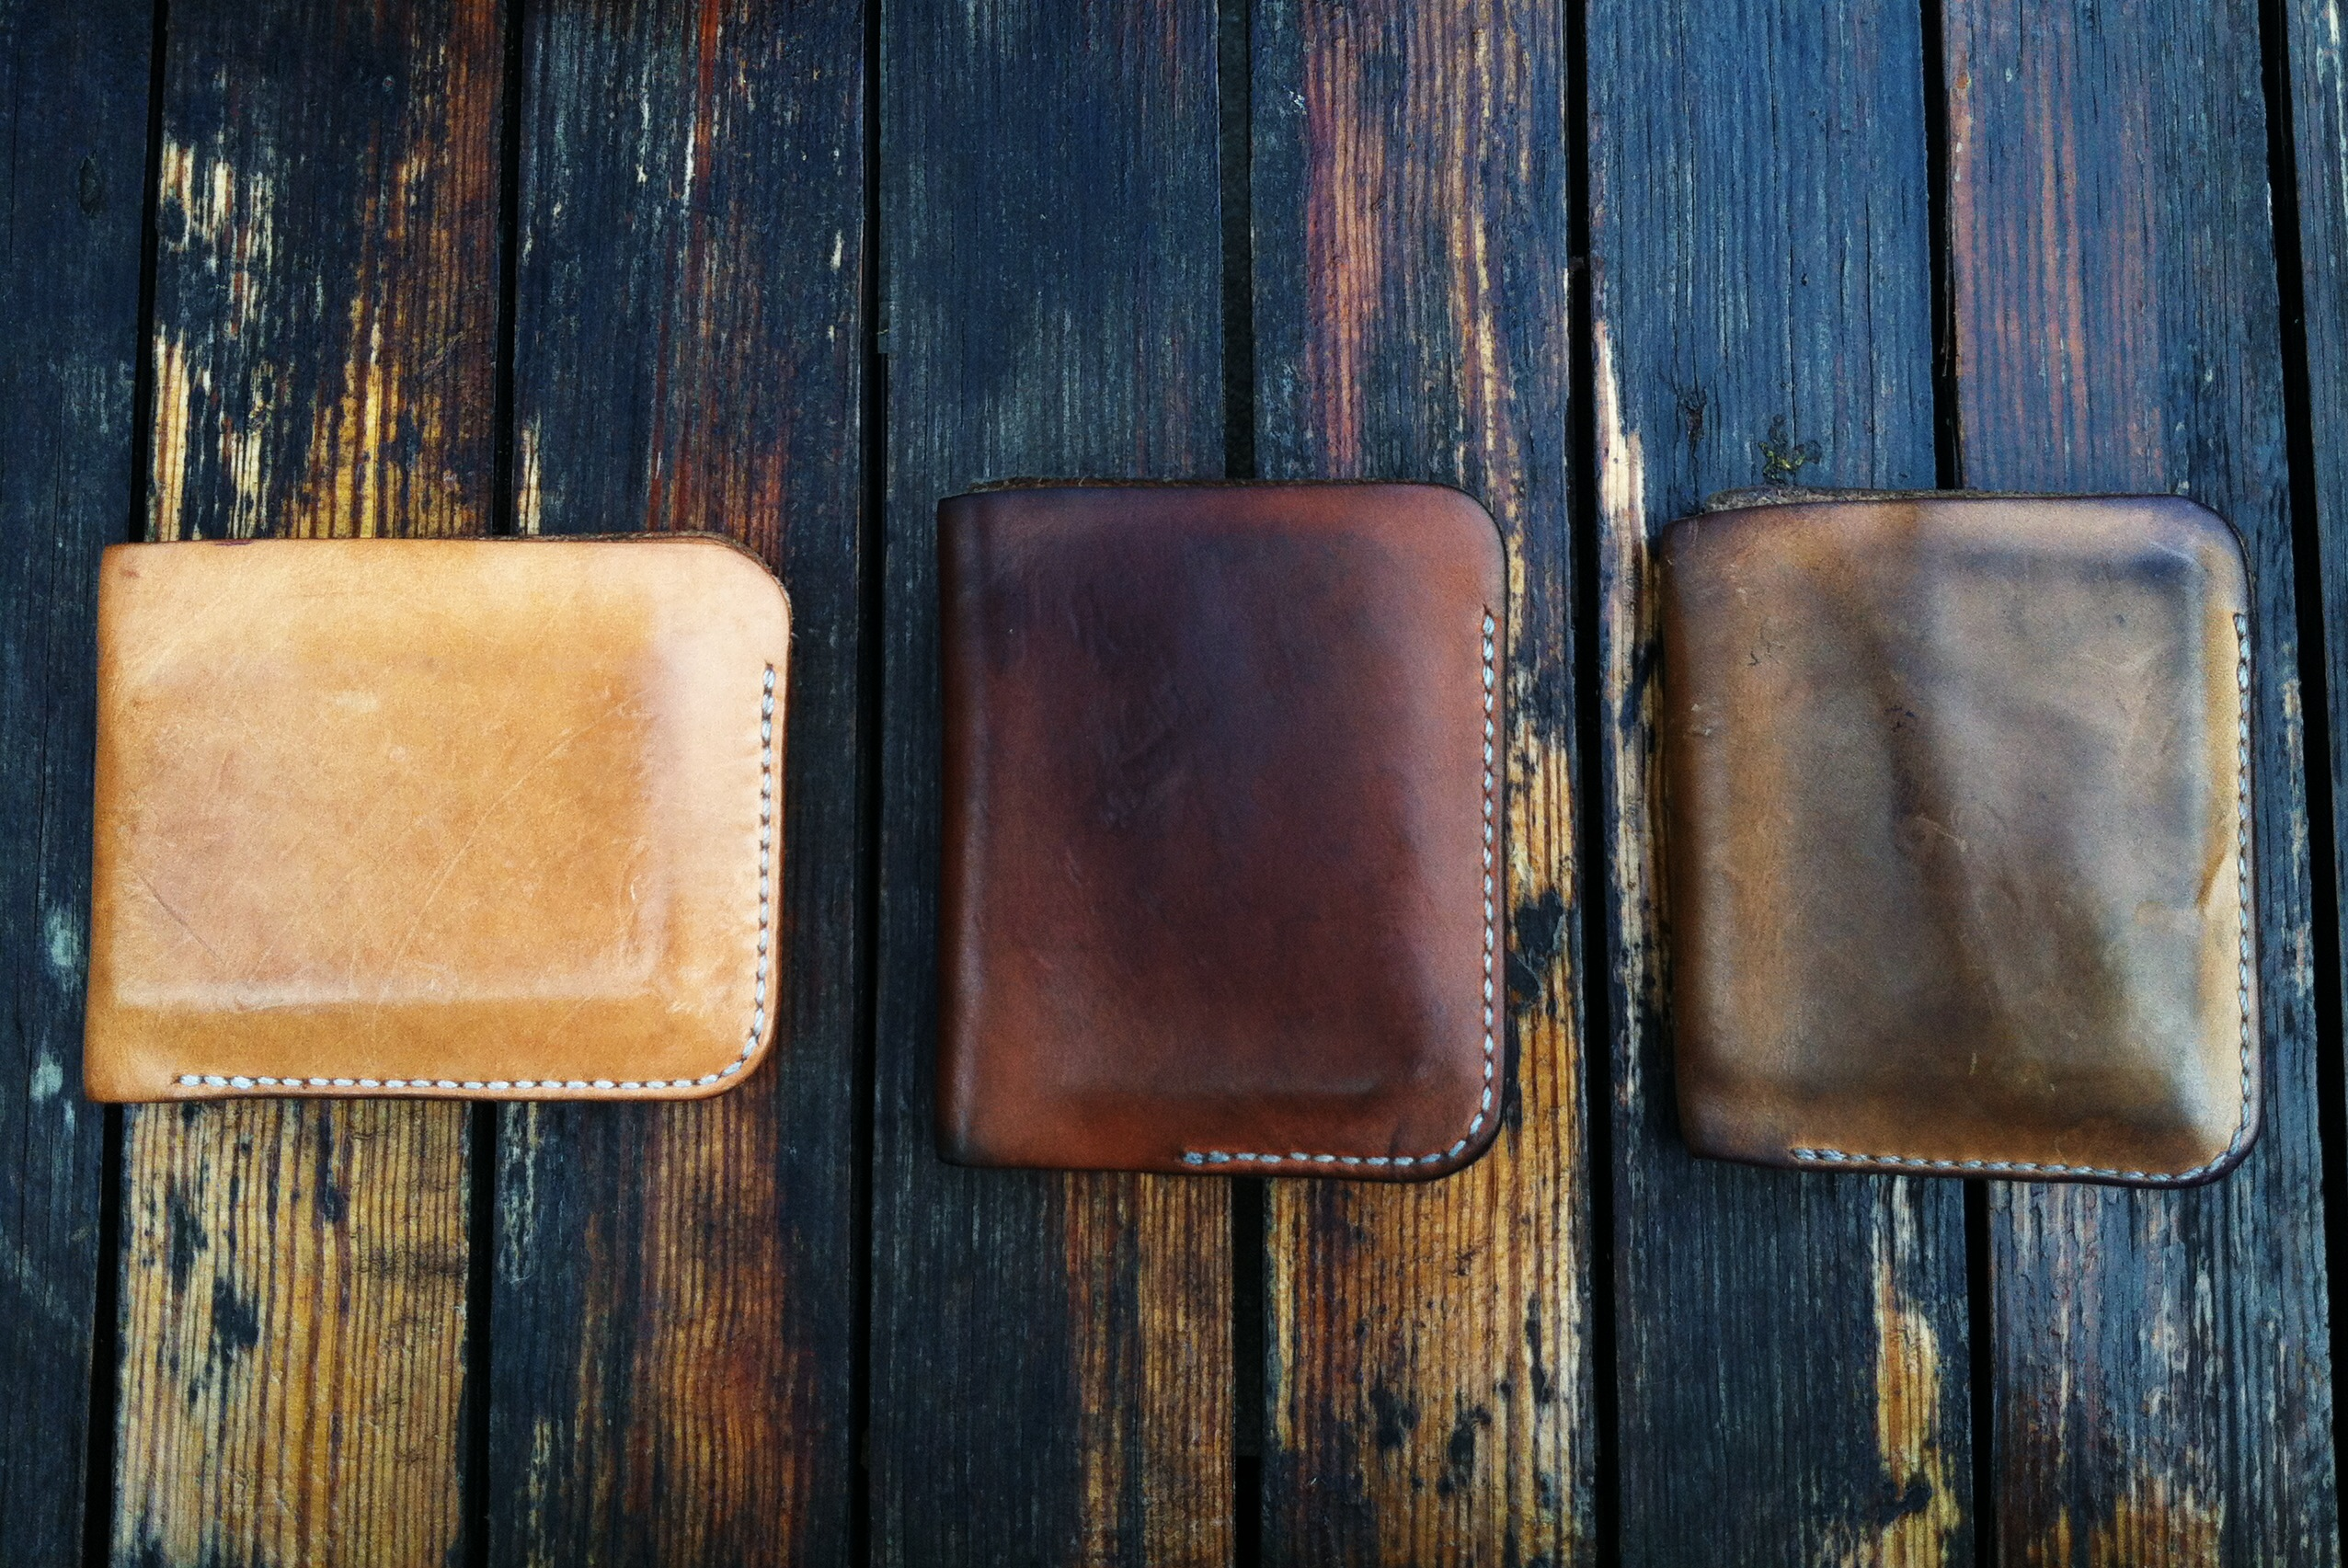 Handmade leather wallets aged over time